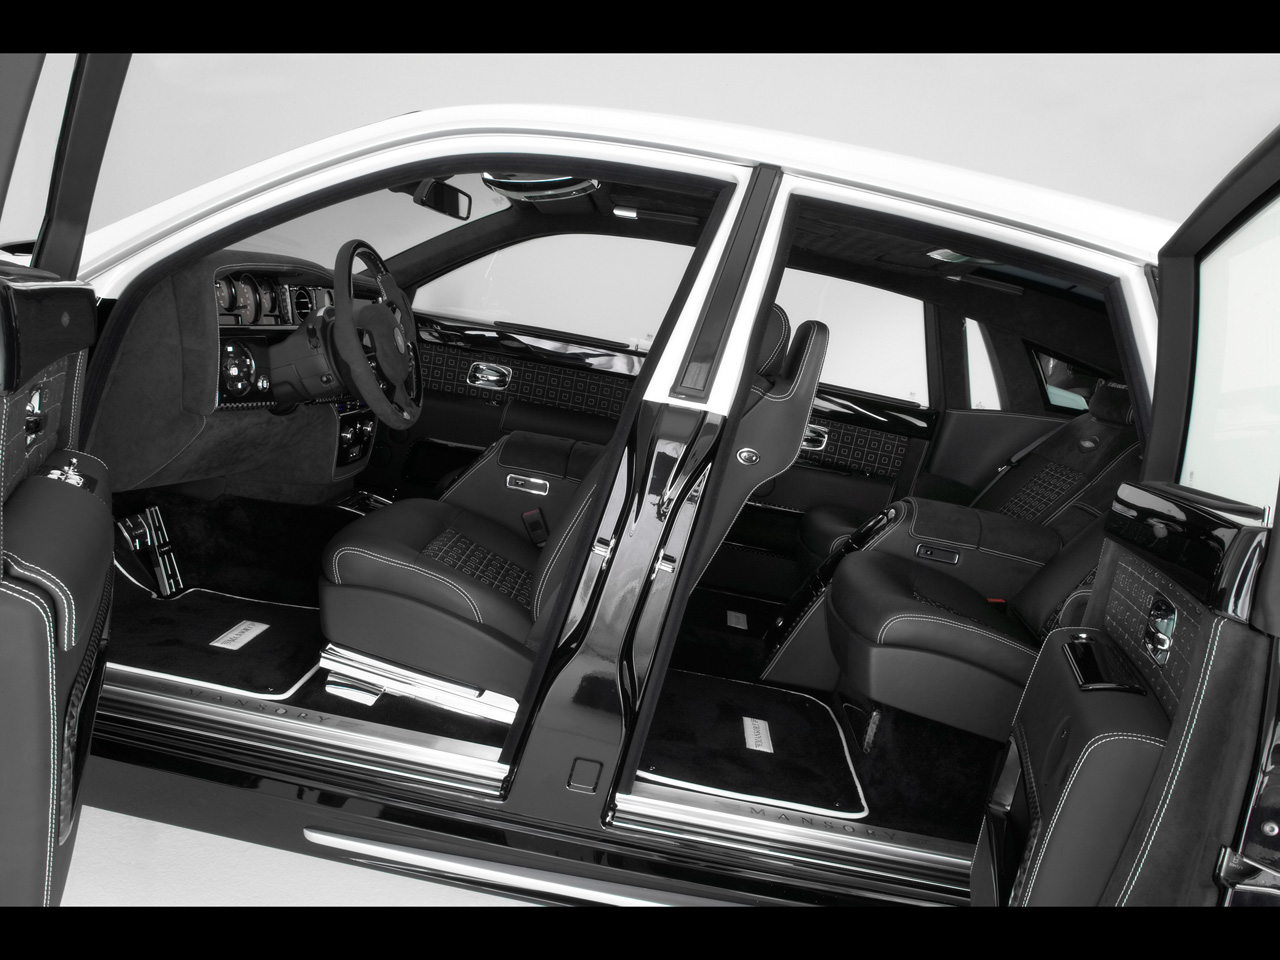 Rolls royce phantom interior car models for Rolls royce ghost interior